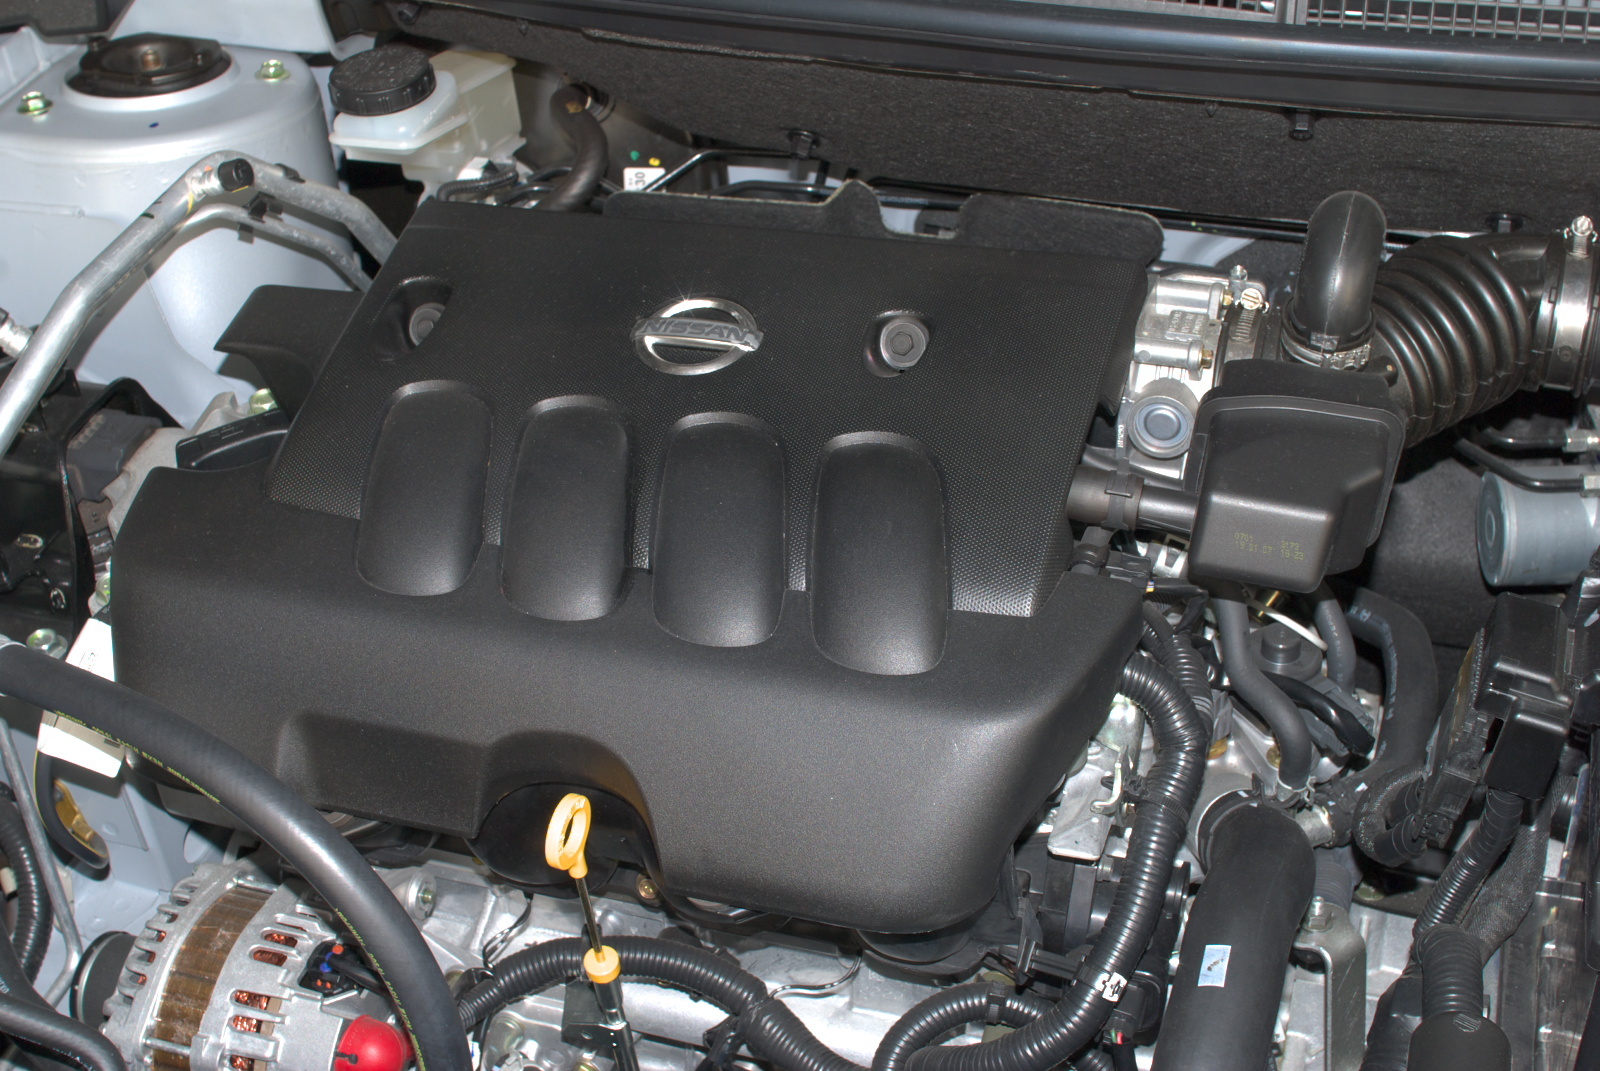 Replace Blend Door Motor likewise How To Add Motor Oil likewise Evap System Diagram further  additionally 6sbox Ford Color Two Iat Wires 2012 Ford 150. on ford fusion air filter location